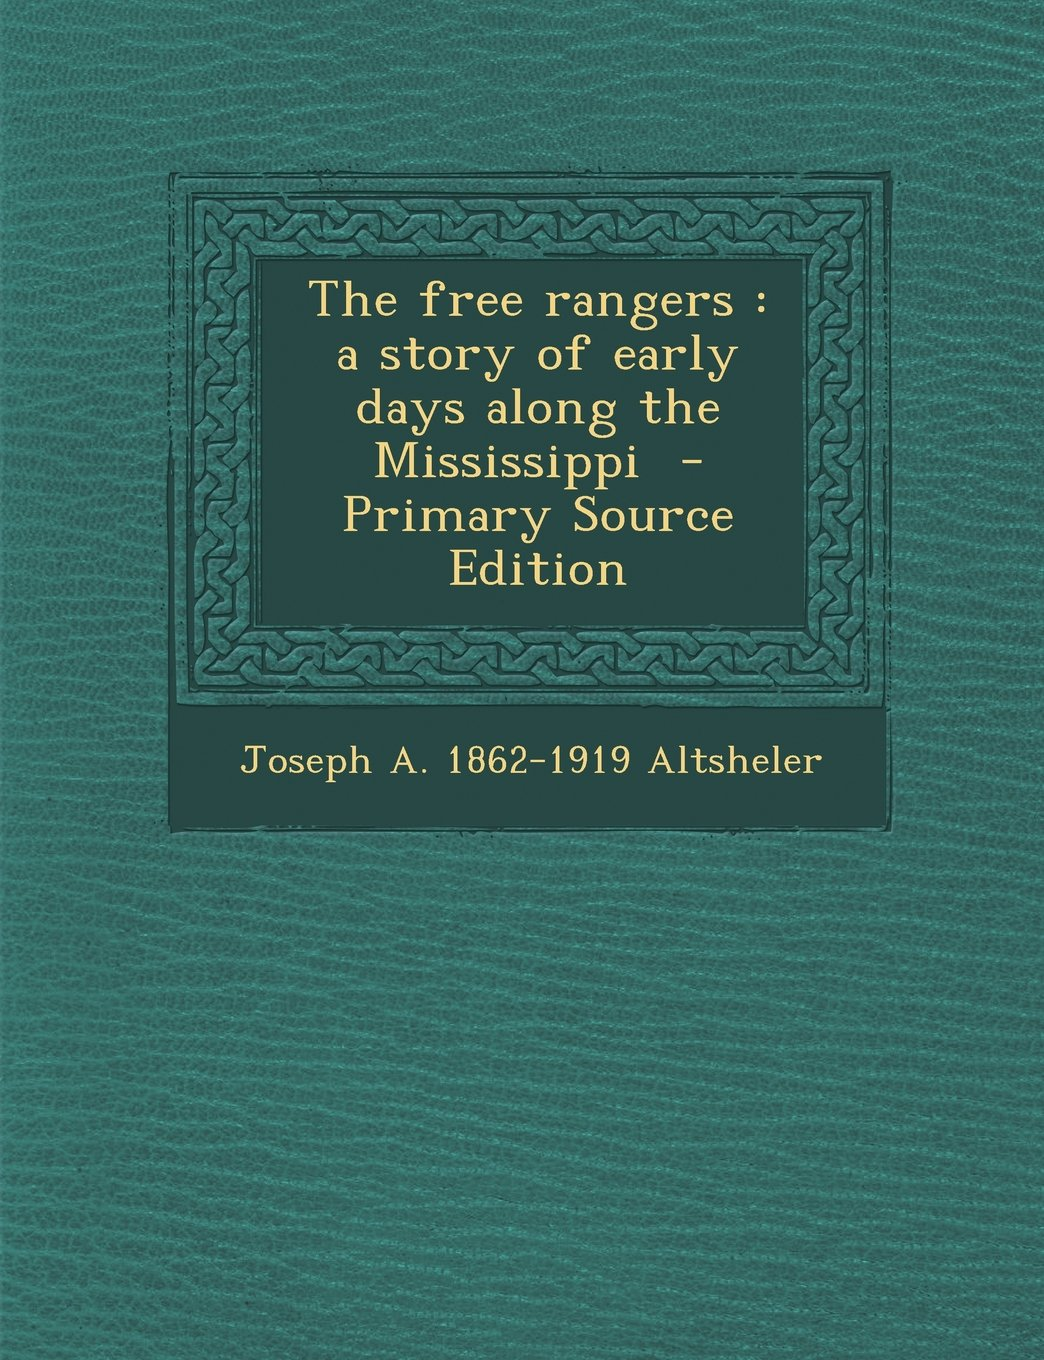 The free rangers: a story of early days along the Mississippi  - Primary Source Edition pdf epub